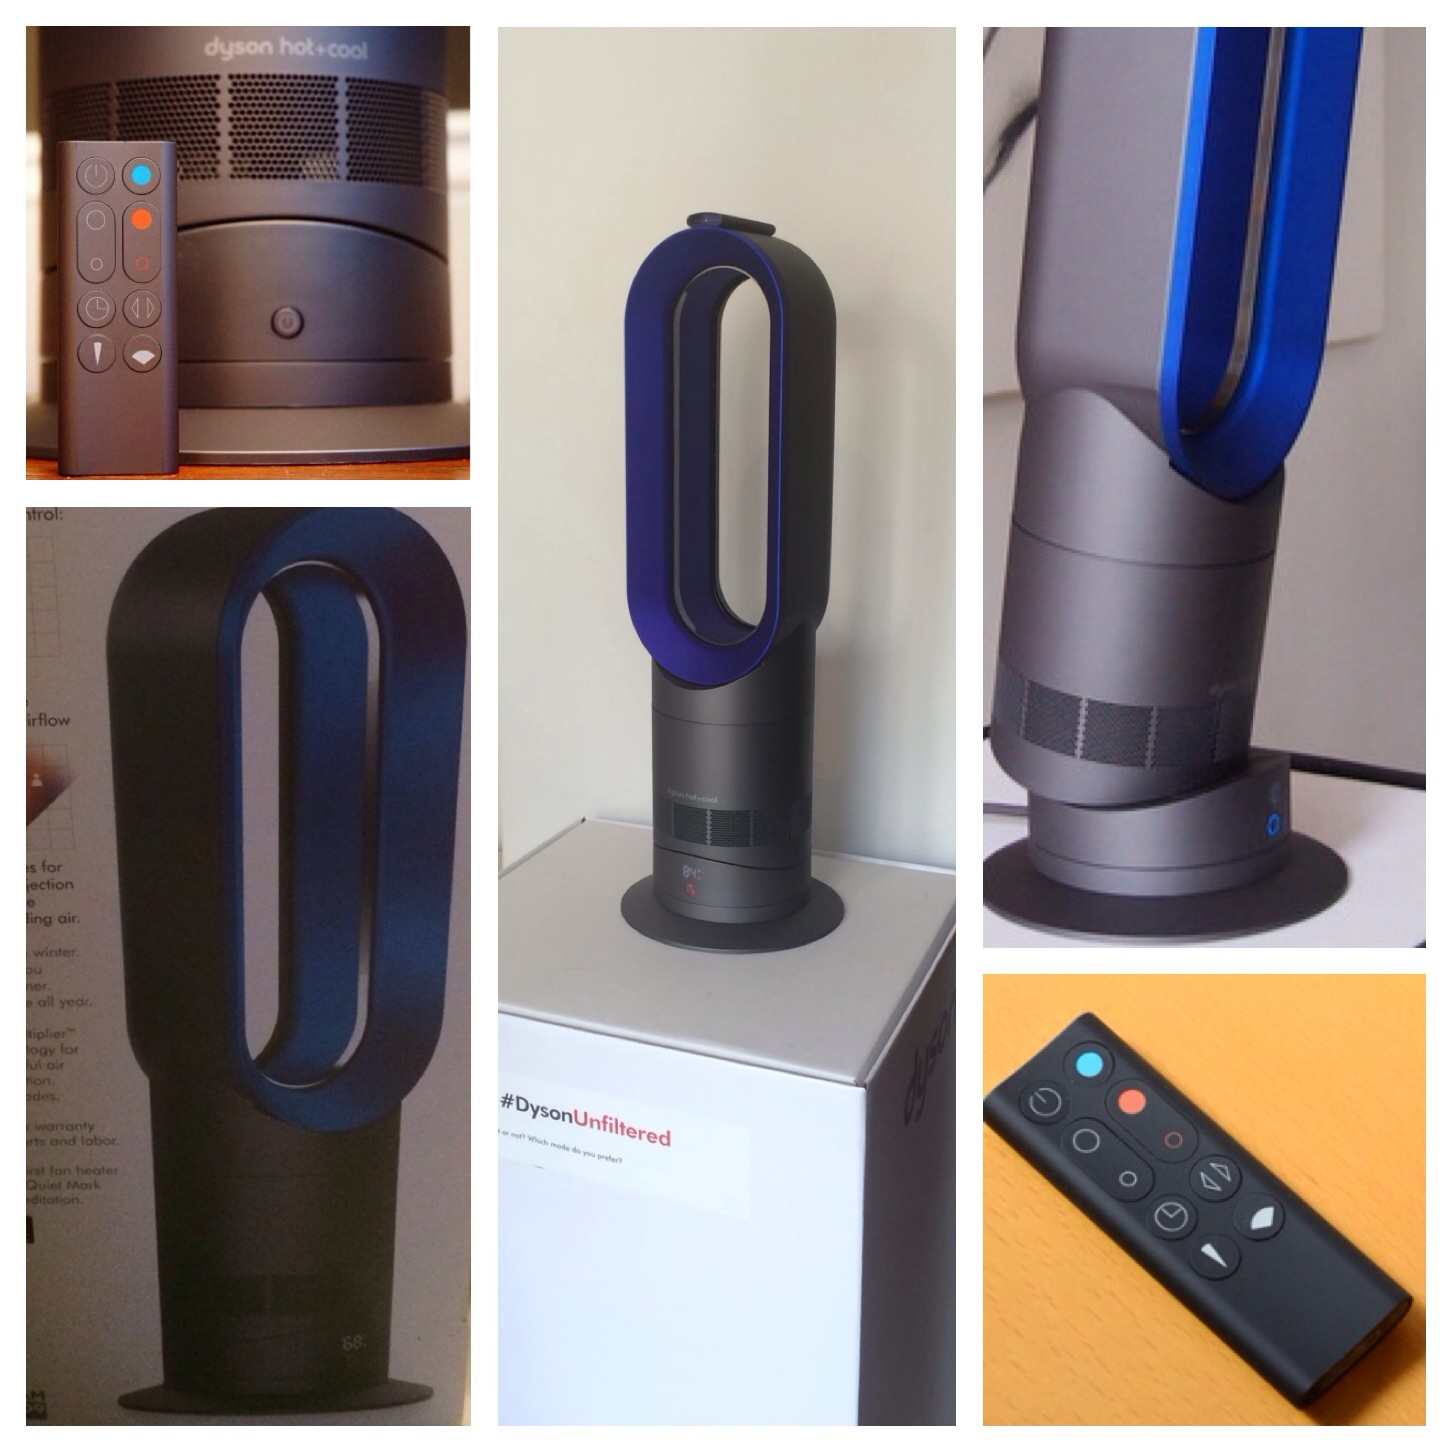 Dyson Am09 Dyson Am09 Hot Cool Fan Heater Review Five Little Words